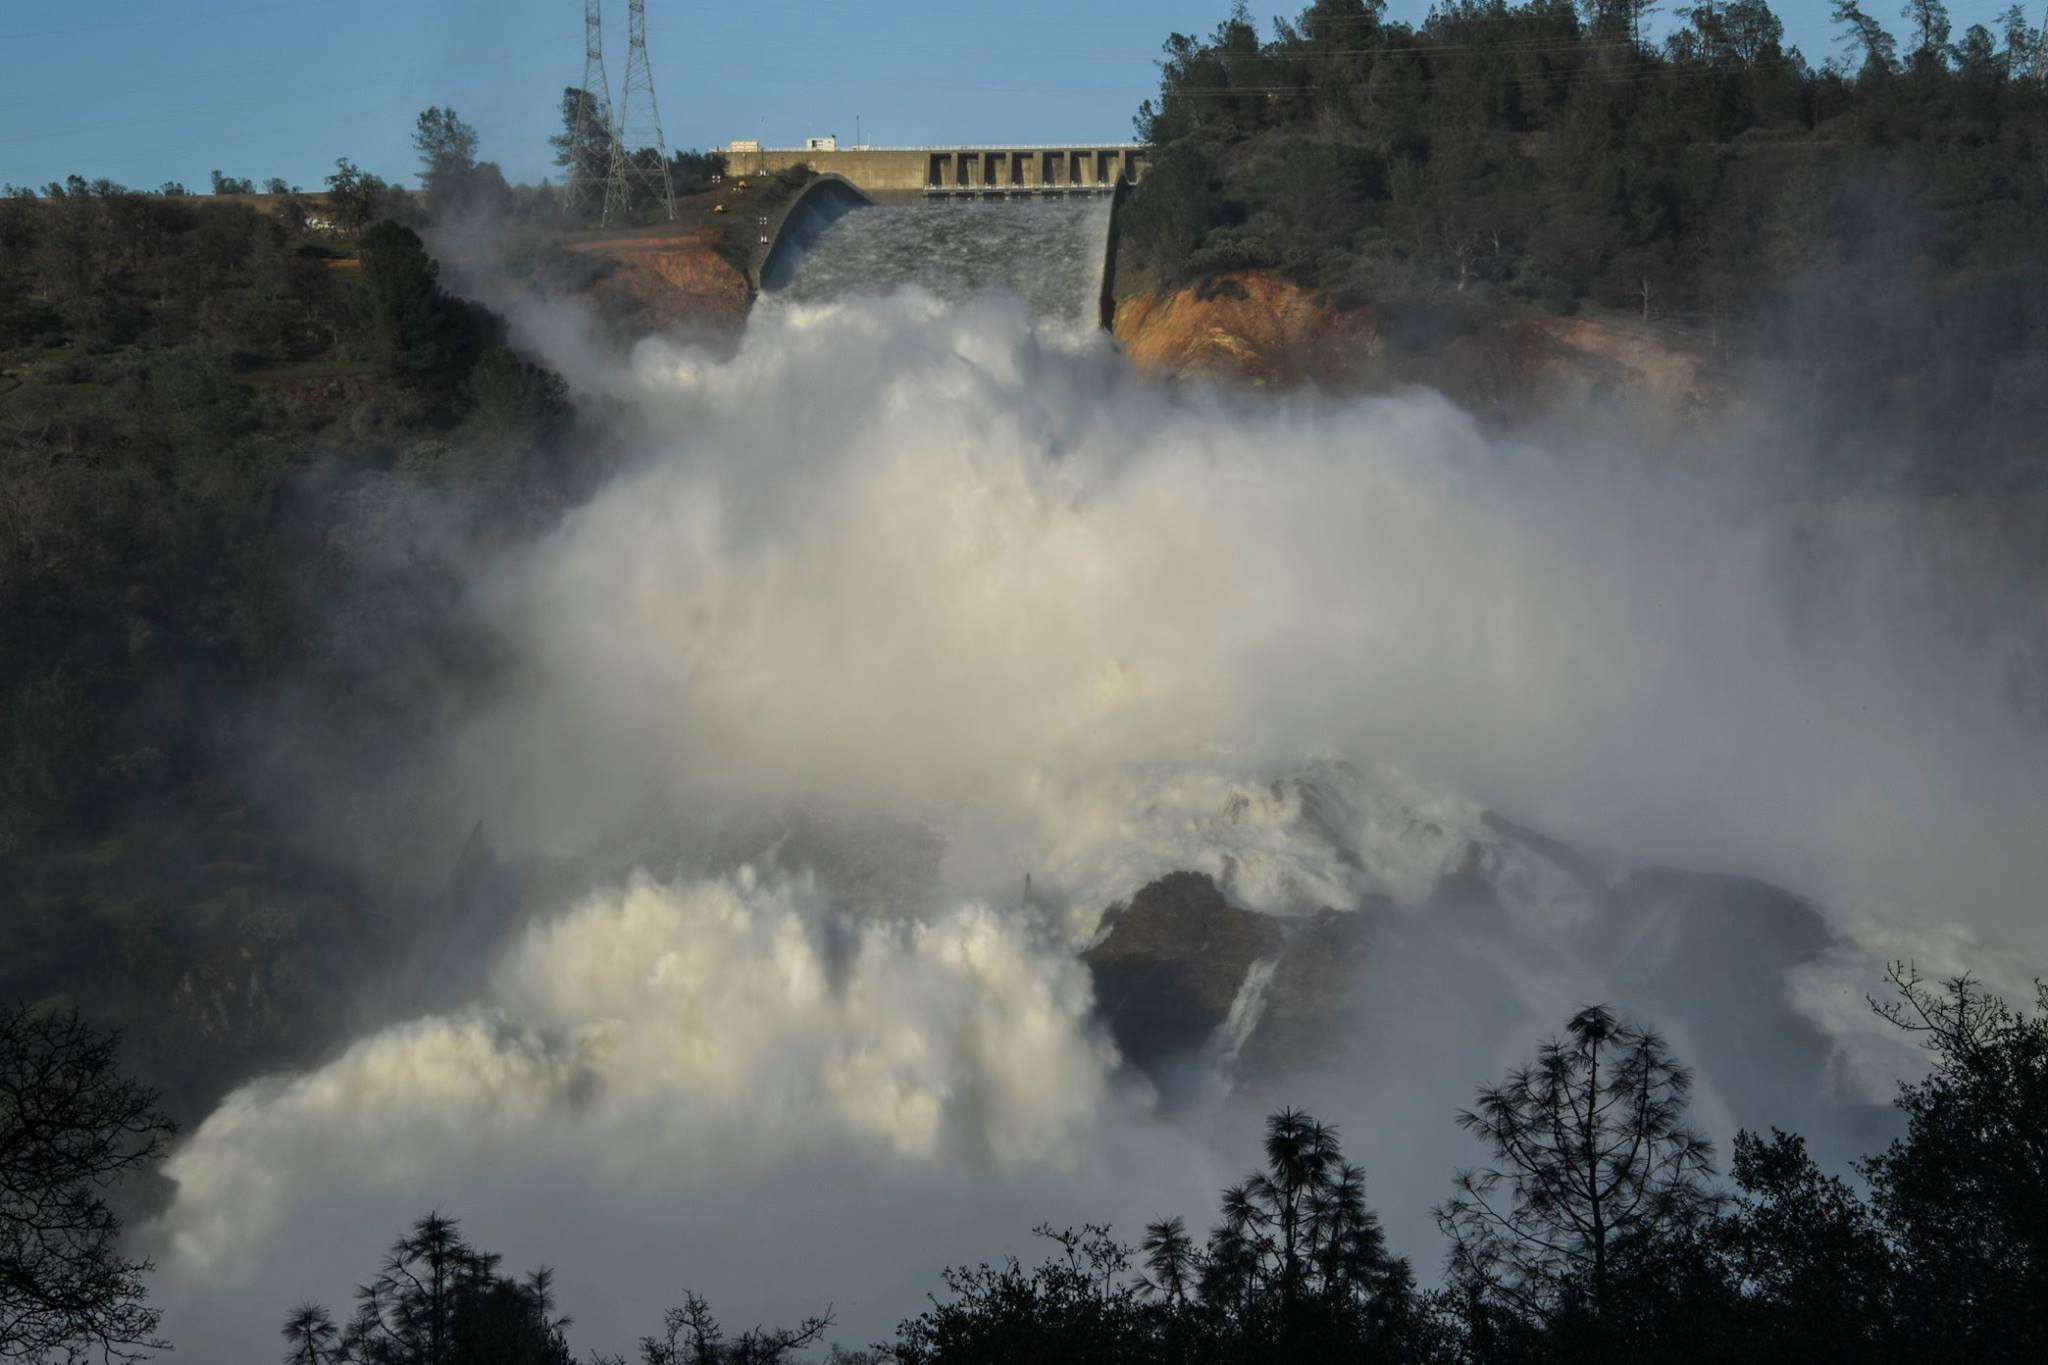 <p>Oroville Dam's spillway collapses, halting the hydroelectric plant's operations. Photo by California National Guard/Flickr</p>